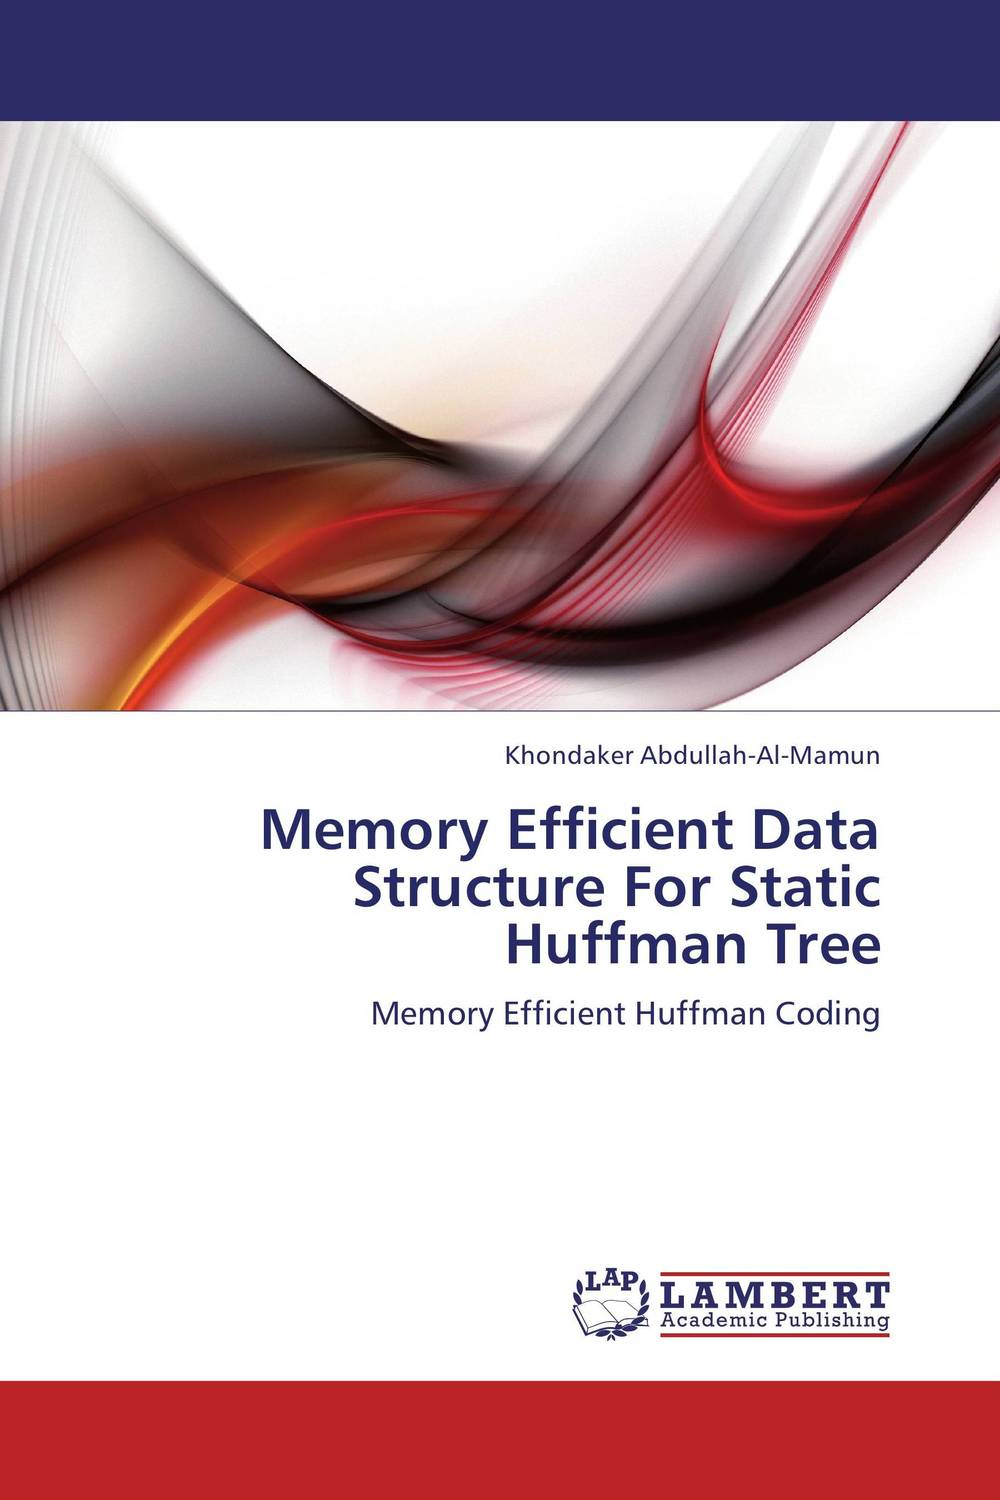 Memory Efficient Data Structure For Static Huffman Tree manpreet kaur saini ravinder singh mann and gurpreet singh an efficient lossless medical image compression